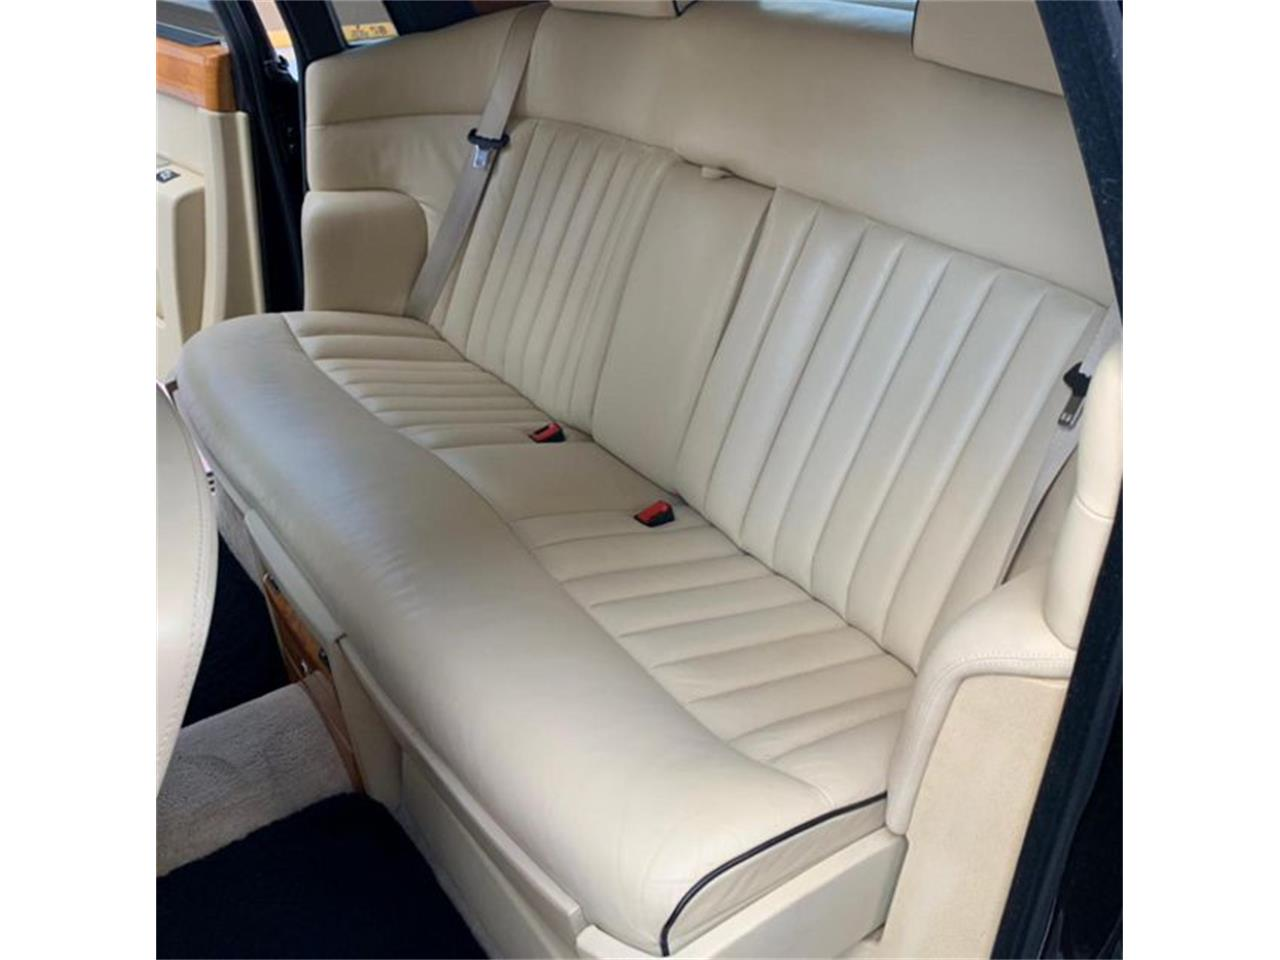 2006 Rolls-Royce Phantom for sale in Valley Park, MO – photo 48